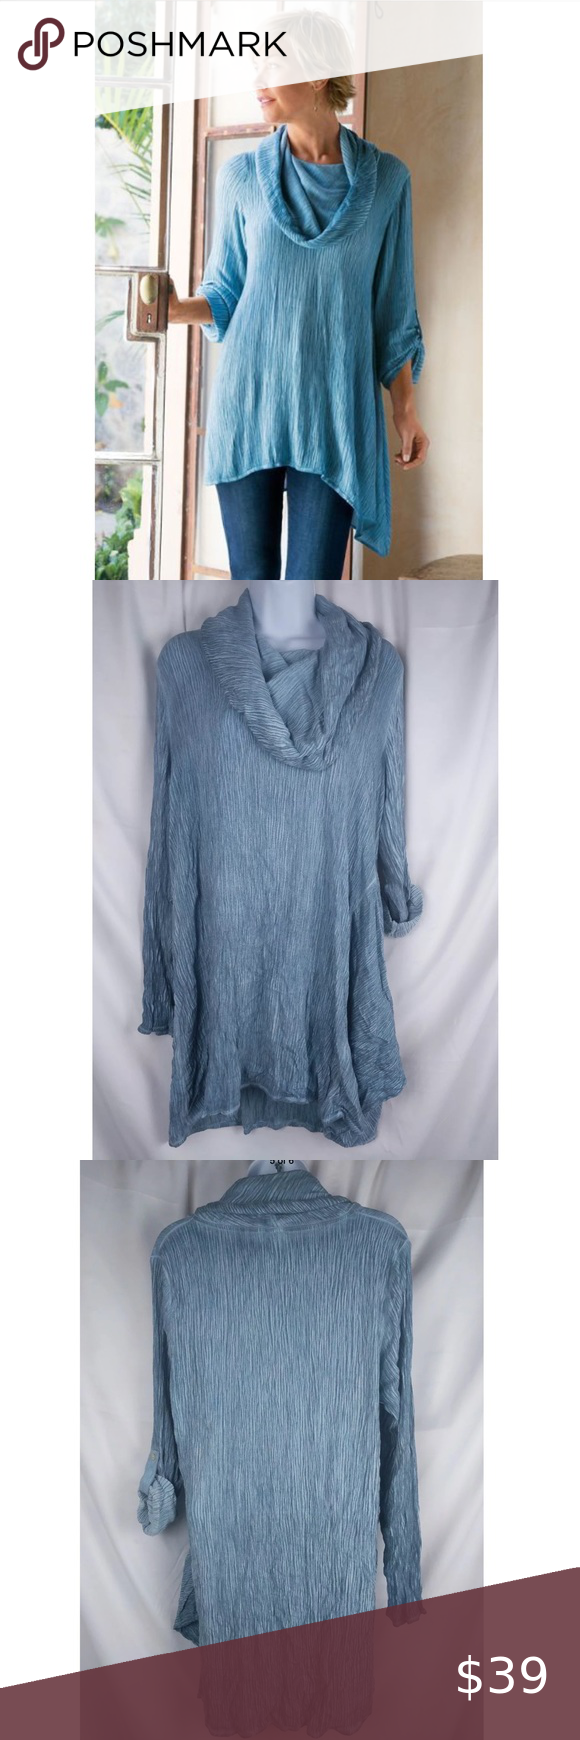 Soft Surroundings Crinkle Gauze Tunic Top M50 Ymetrical Cowl Neck